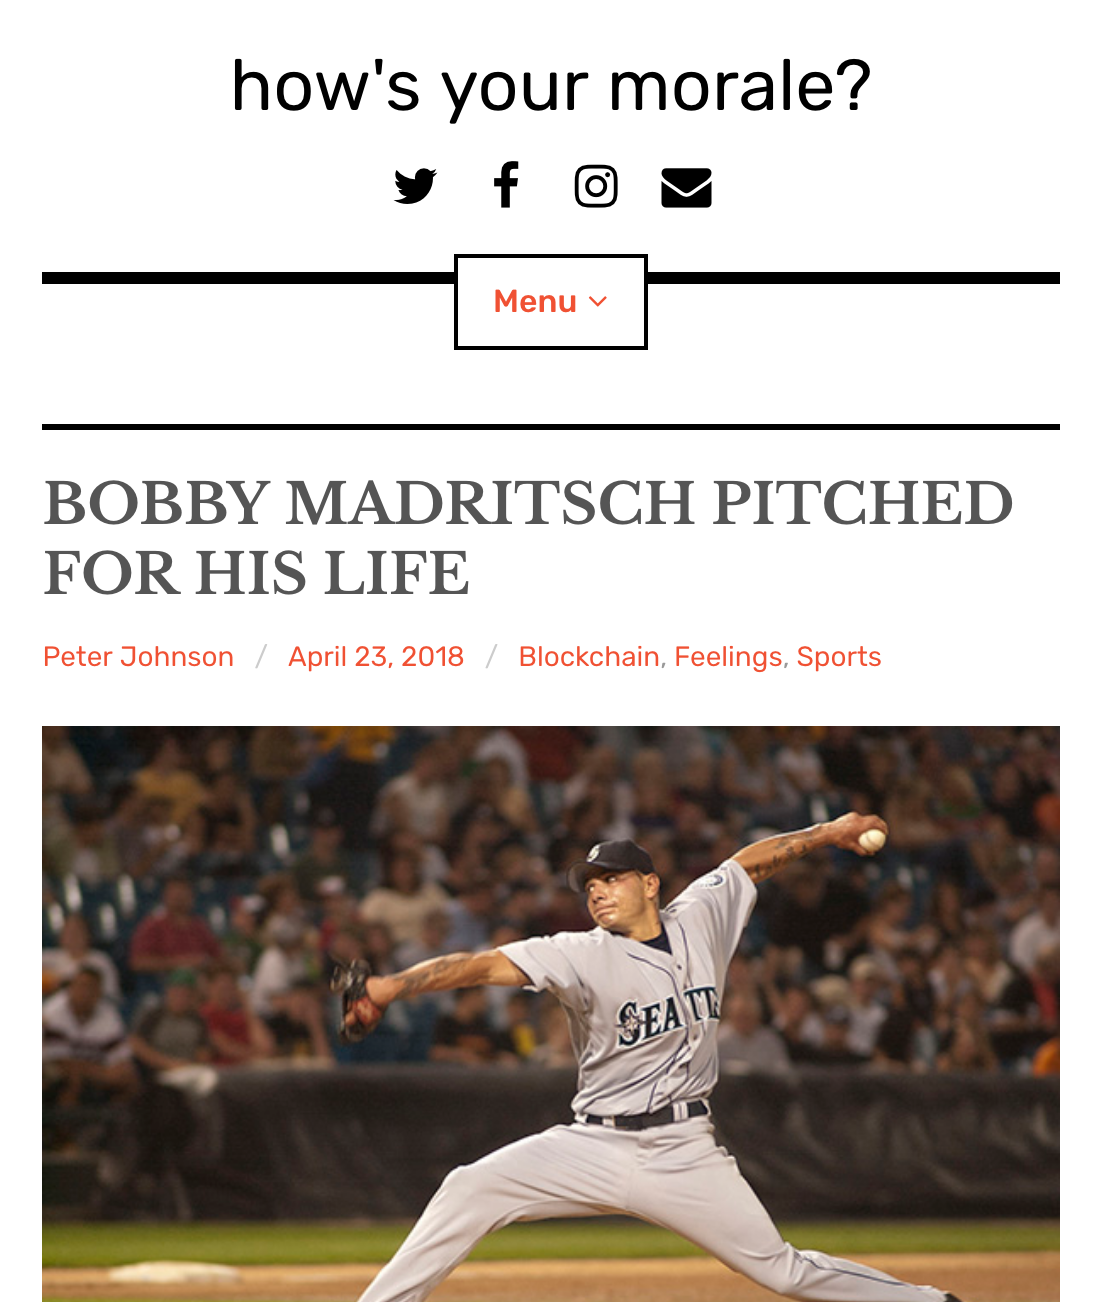 - A post about labor economics and race in baseball, told through the story of Bobby Madritsch, a rare Native American major leaguer.